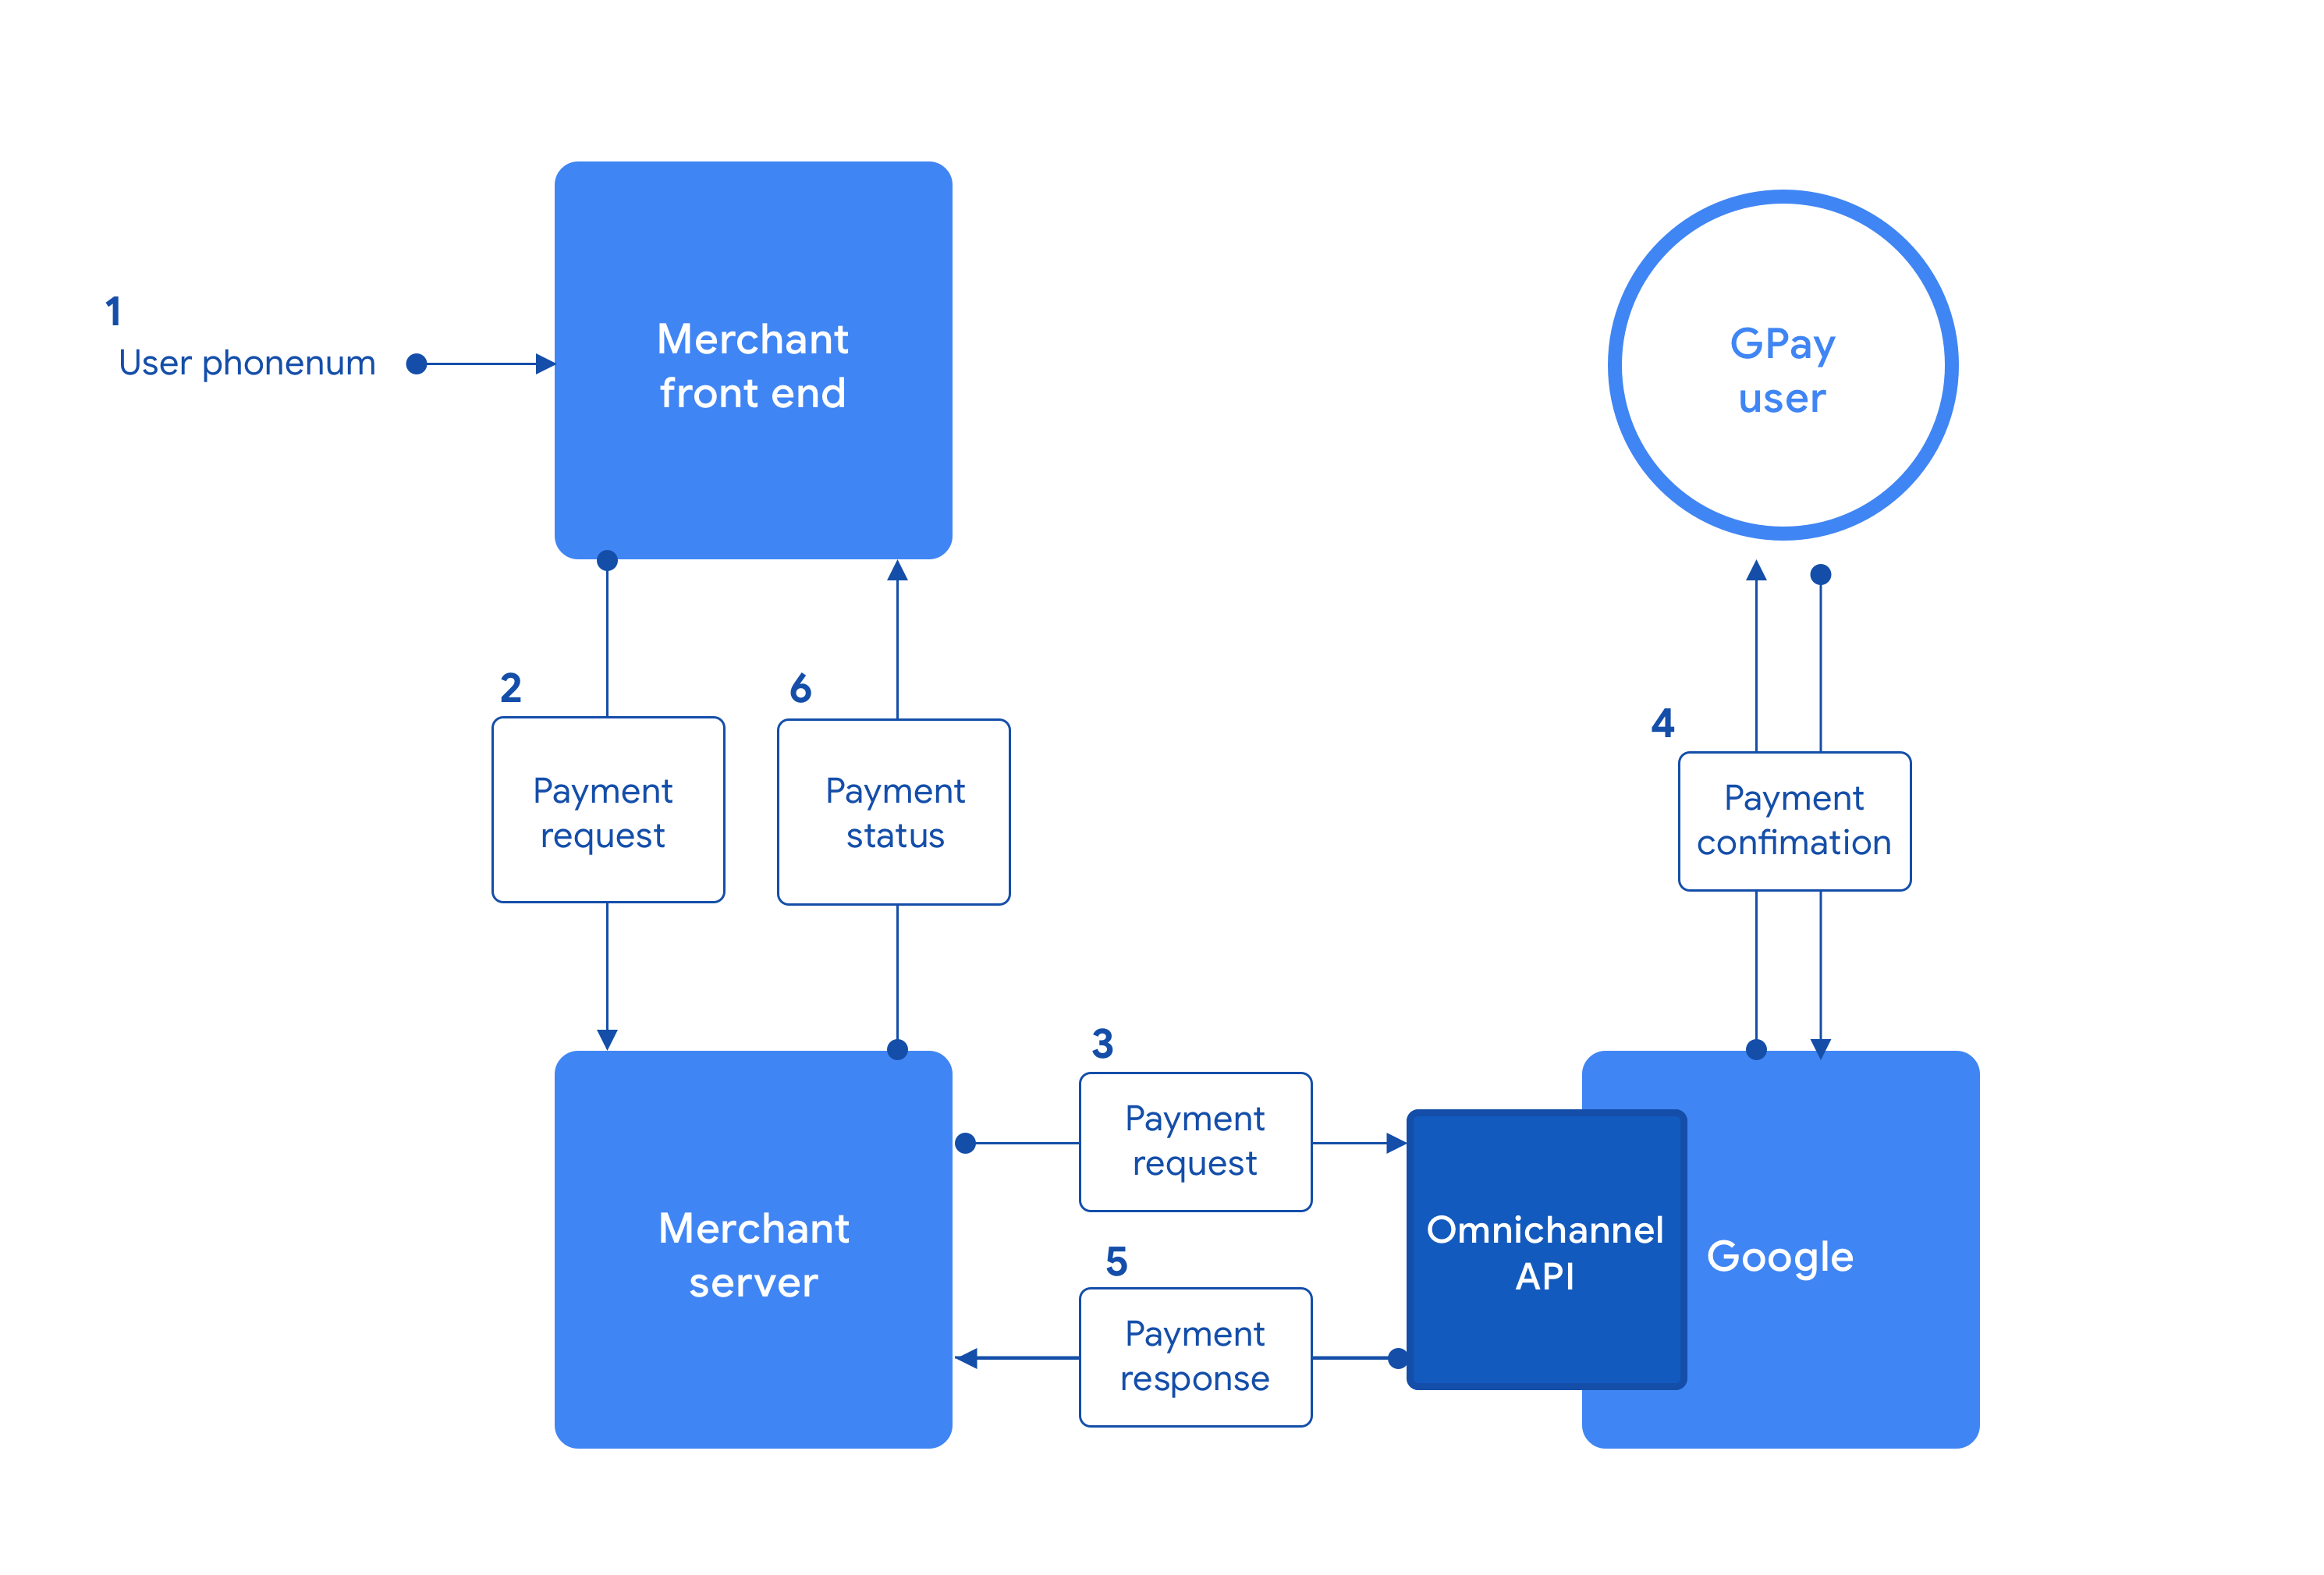 Omnichannel API payment flow